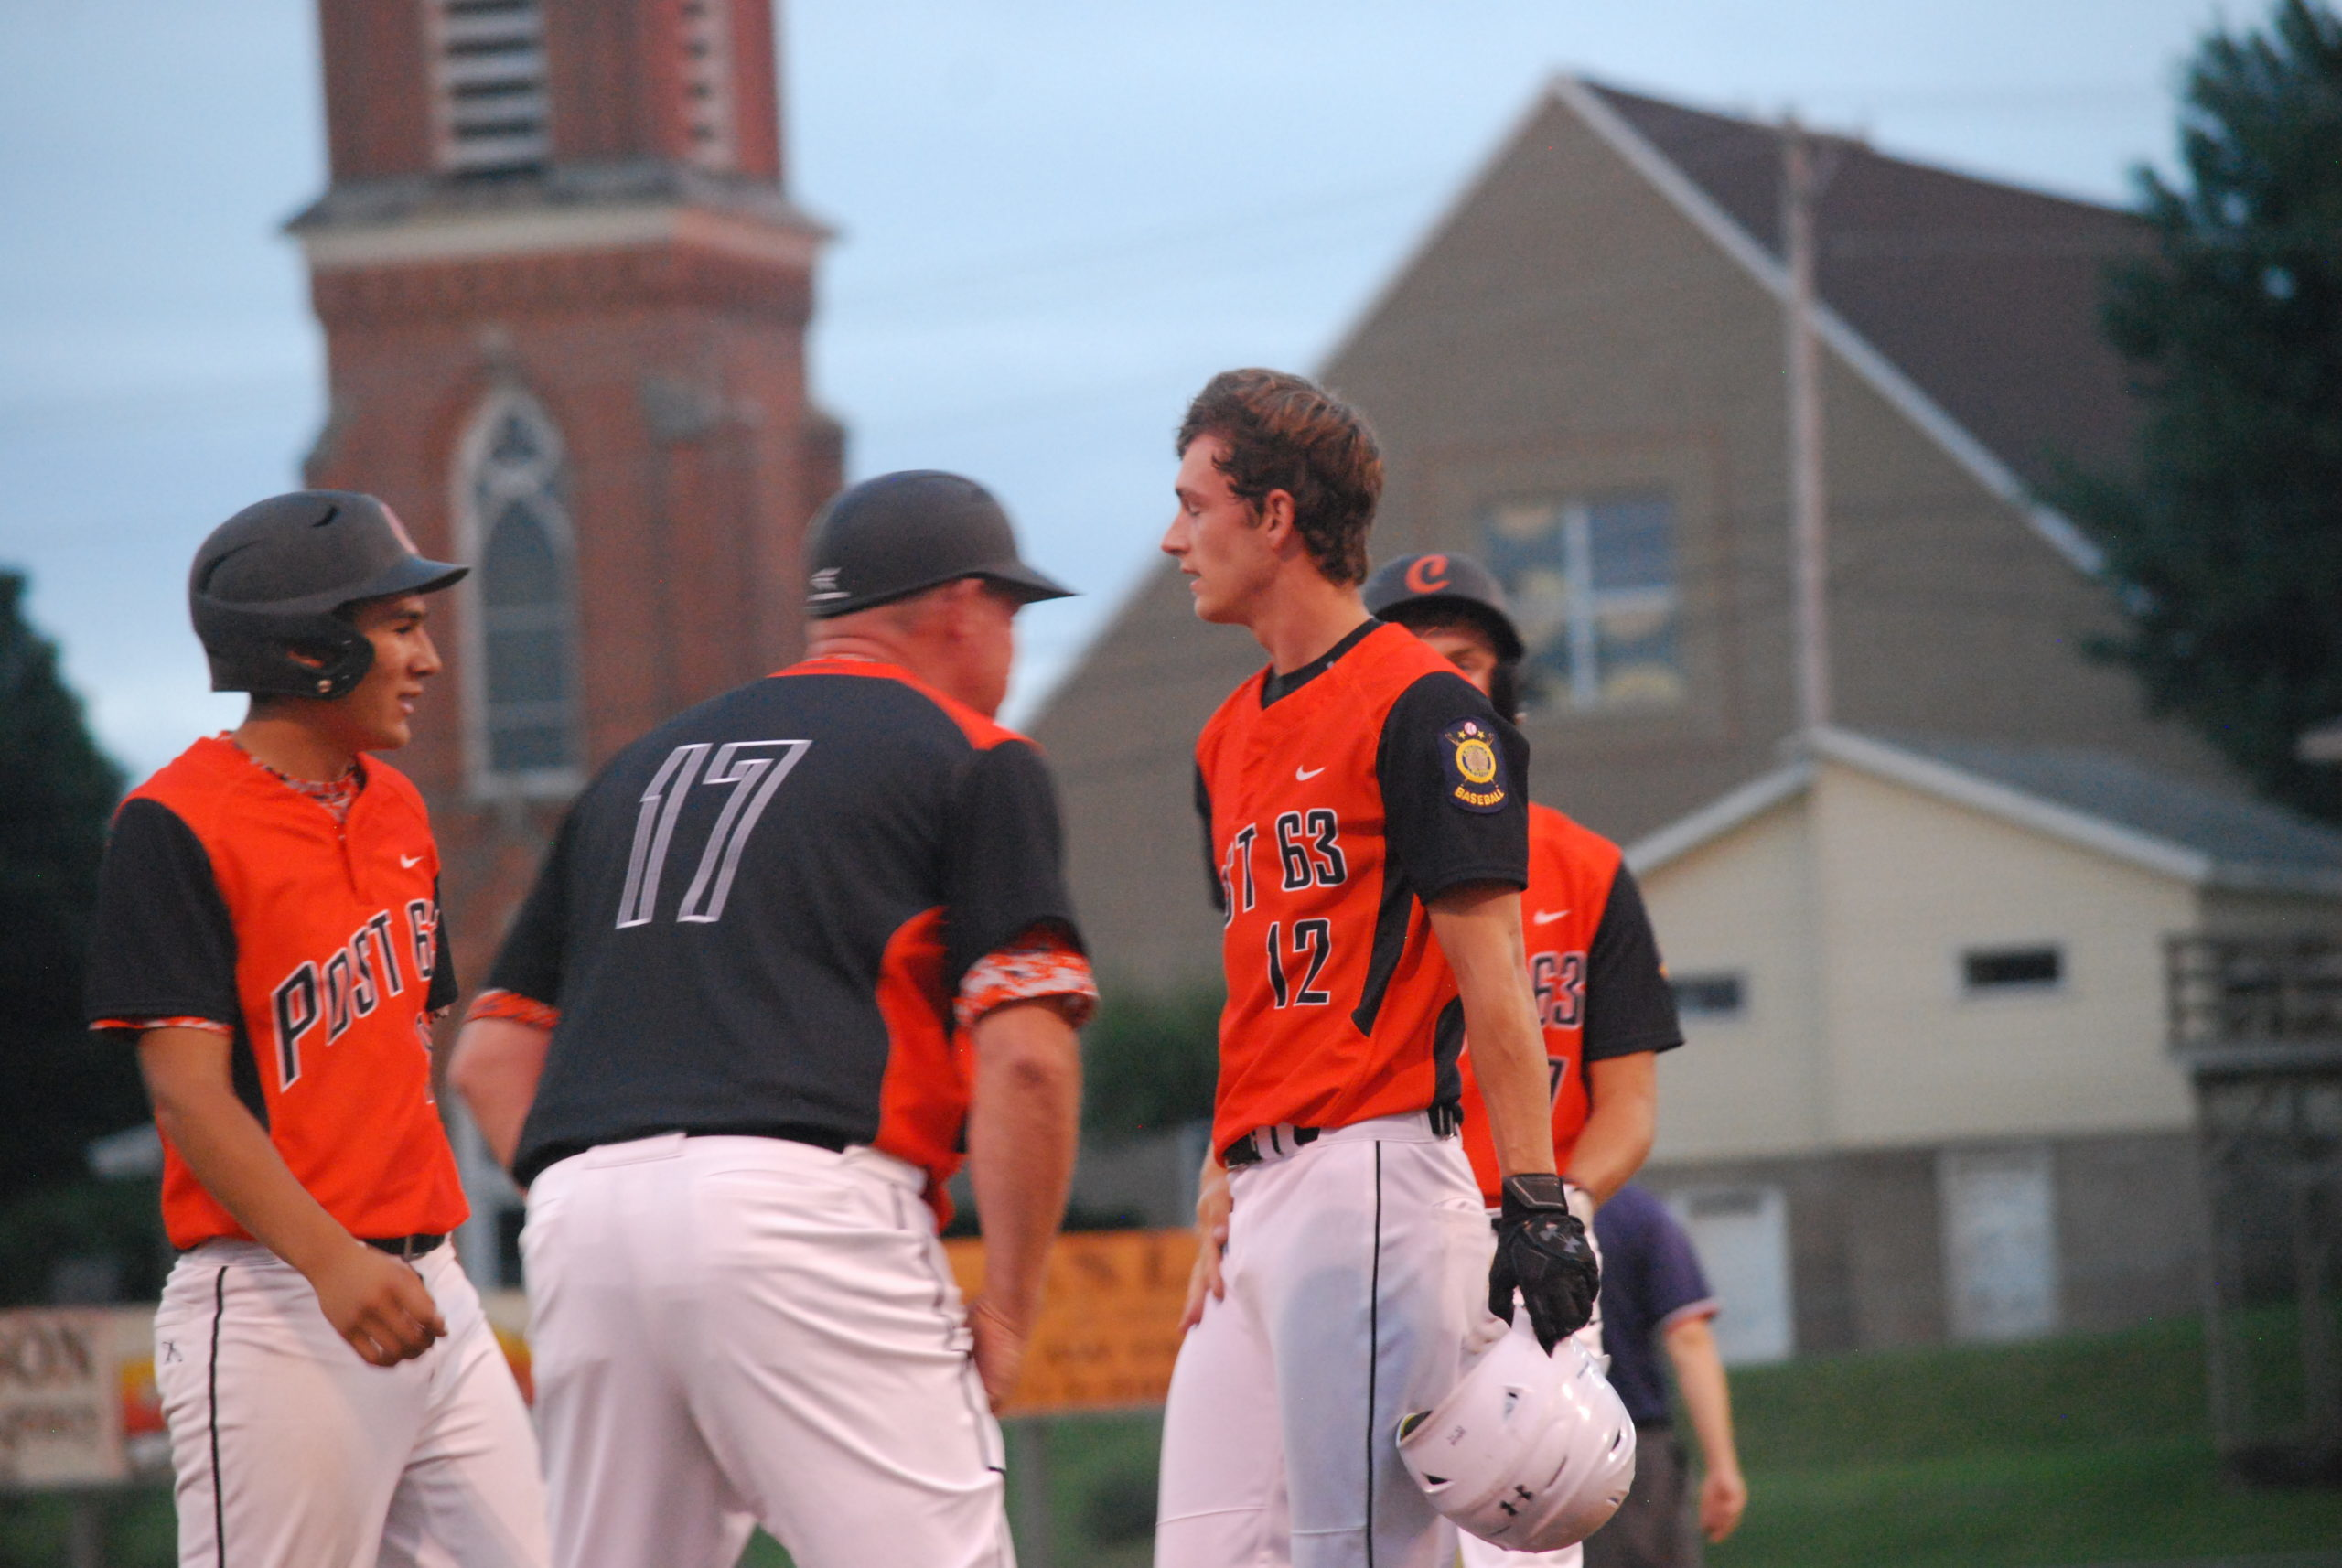 Diamondcats Off To A Strong Start at State